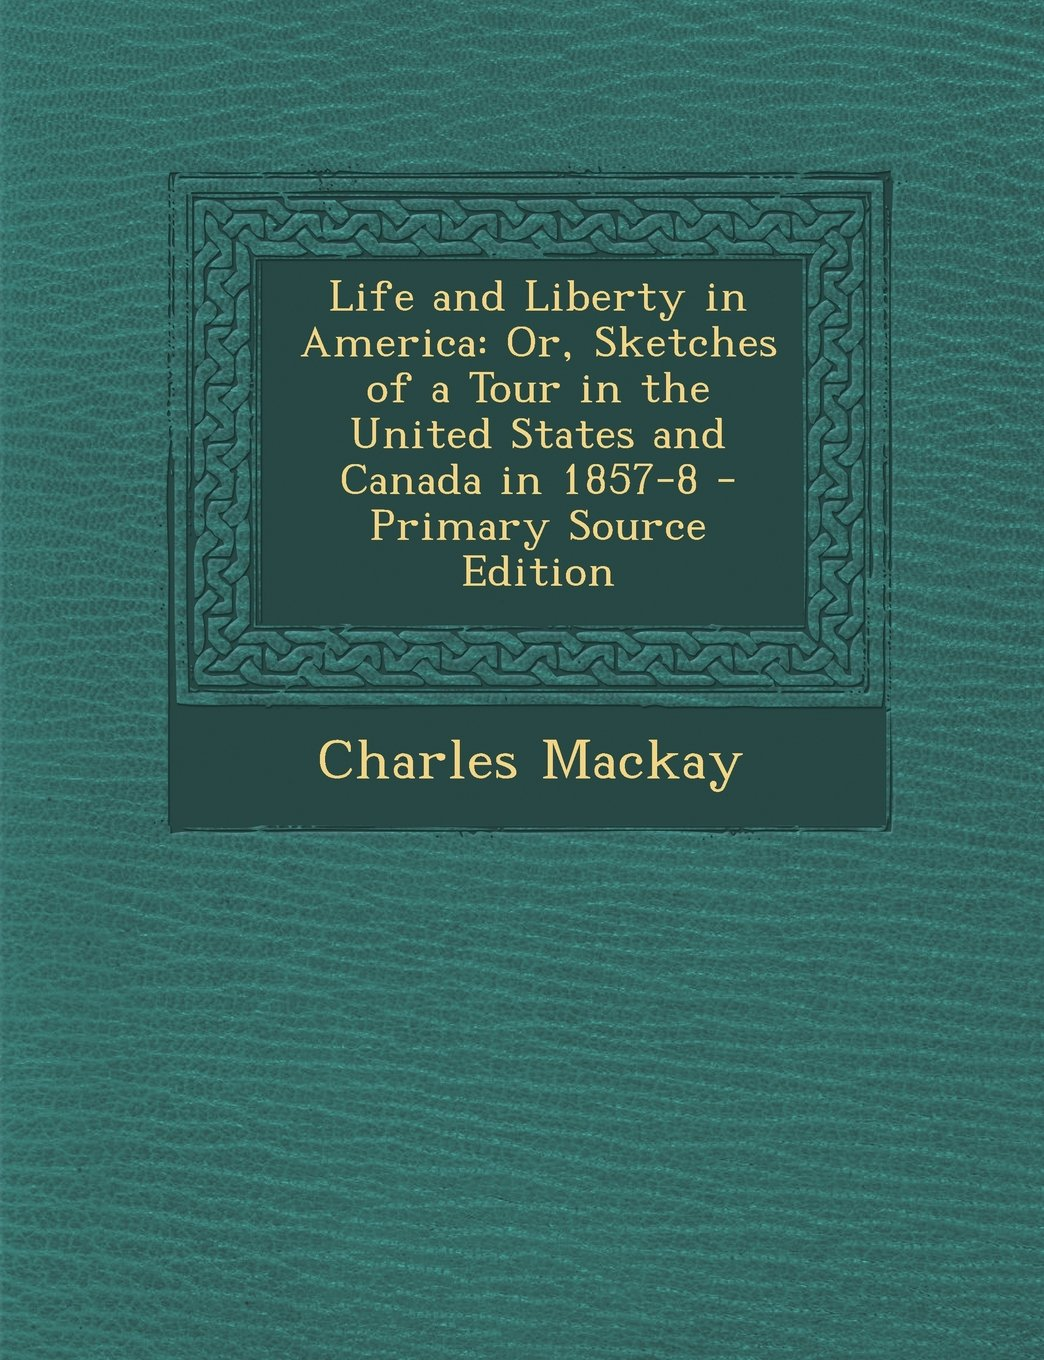 Life and Liberty in America: Or, Sketches of a Tour in the United States and Canada in 1857-8 pdf